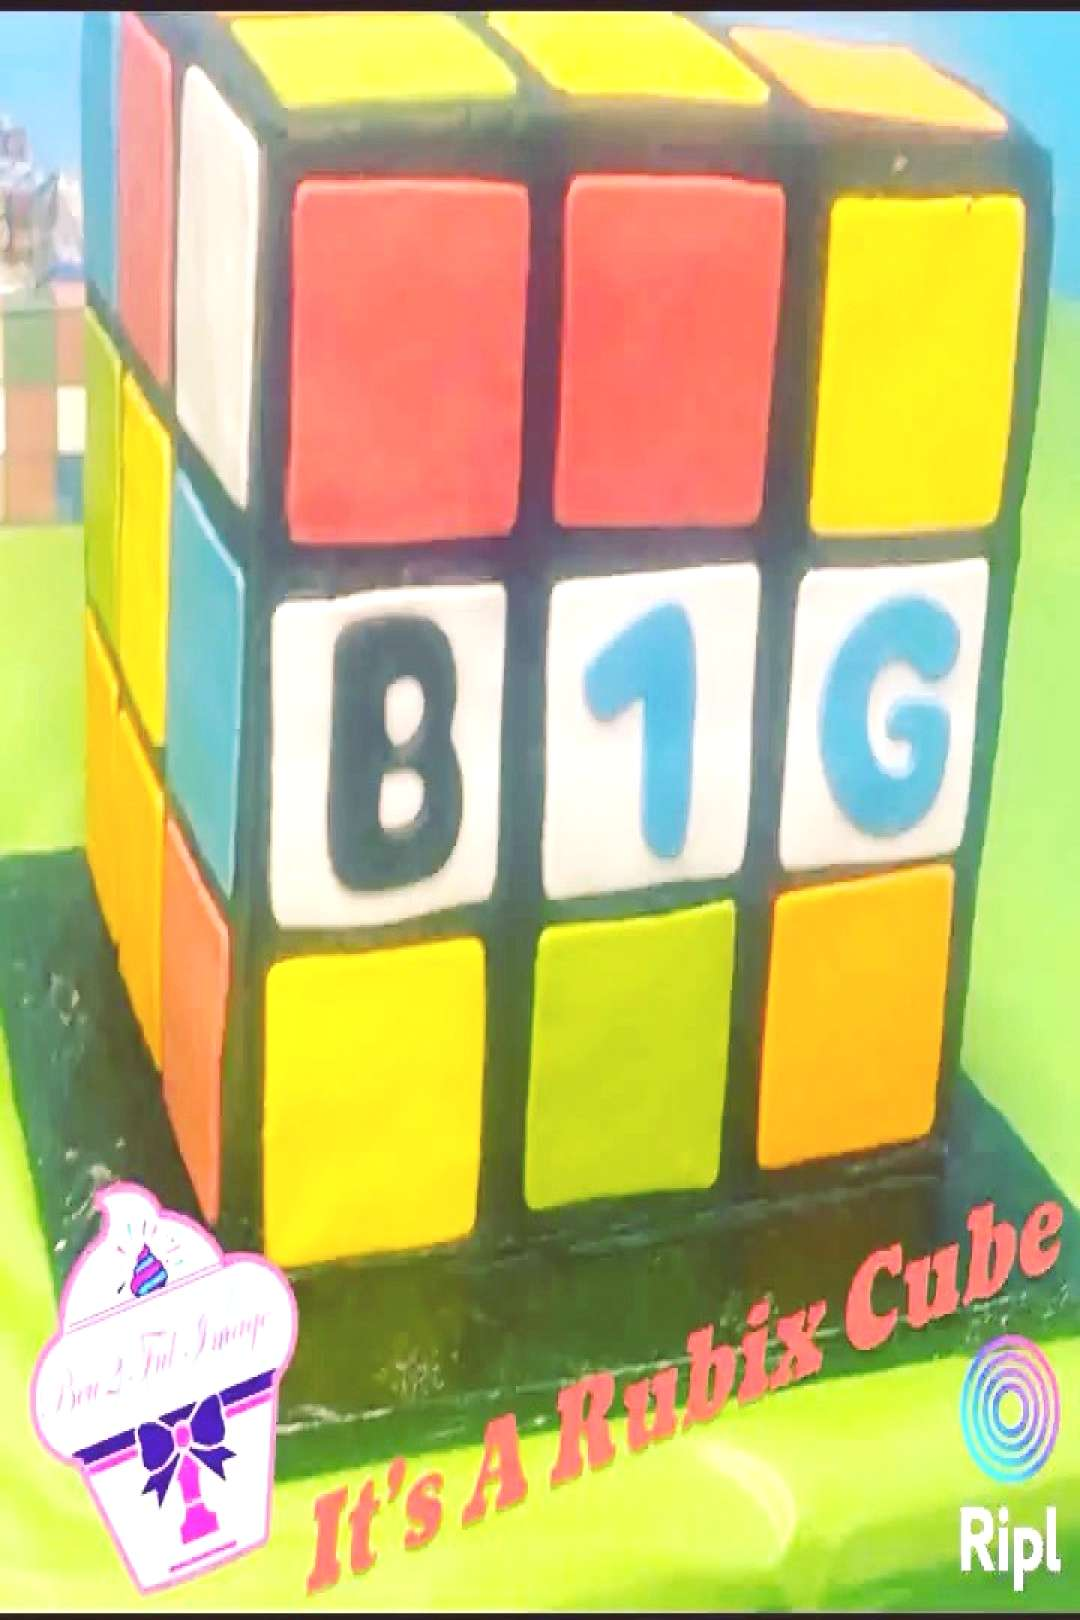 IT'S A RUBIX CUBE.. And NO 1 guessed it maybe NEXT cake my beu2fu